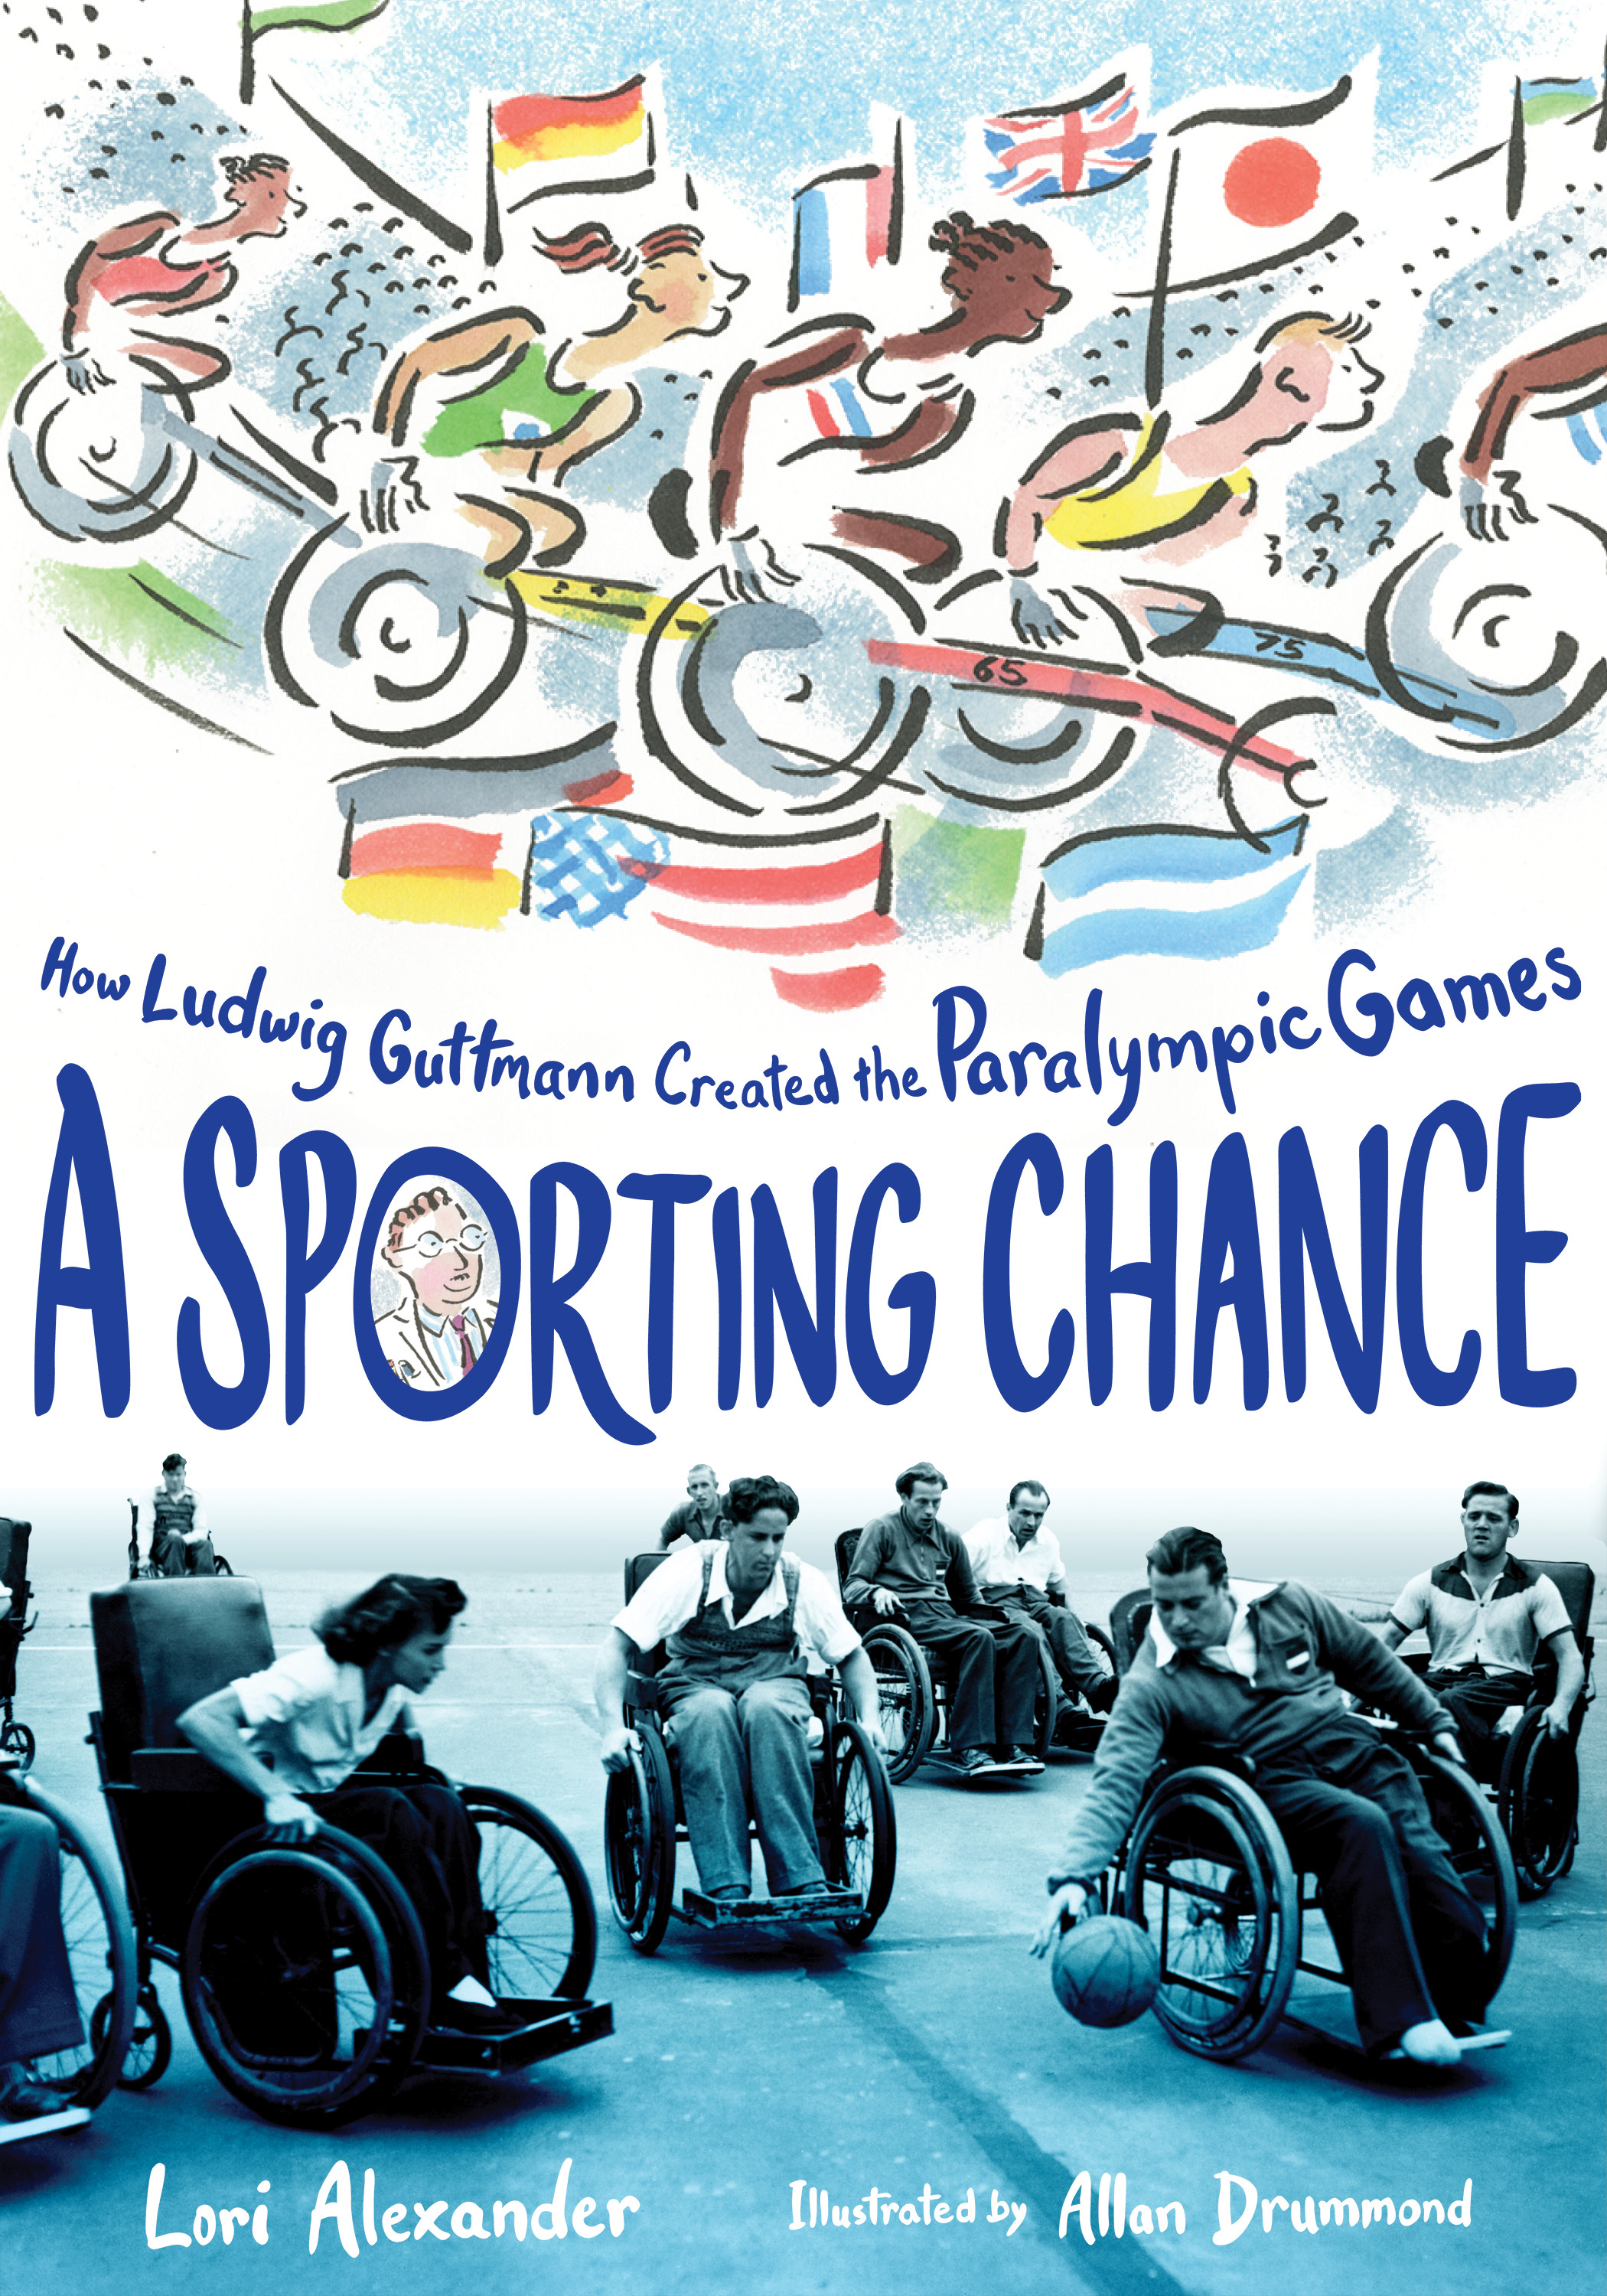 A Sporting Chance: How Ludwig Guttmann Created the Paralympic Games Author: Lori Alexander Illustrator: Allan Drummond Publisher Name: Houghton Mifflin Harcourt Date of Publication: April 7, 2020